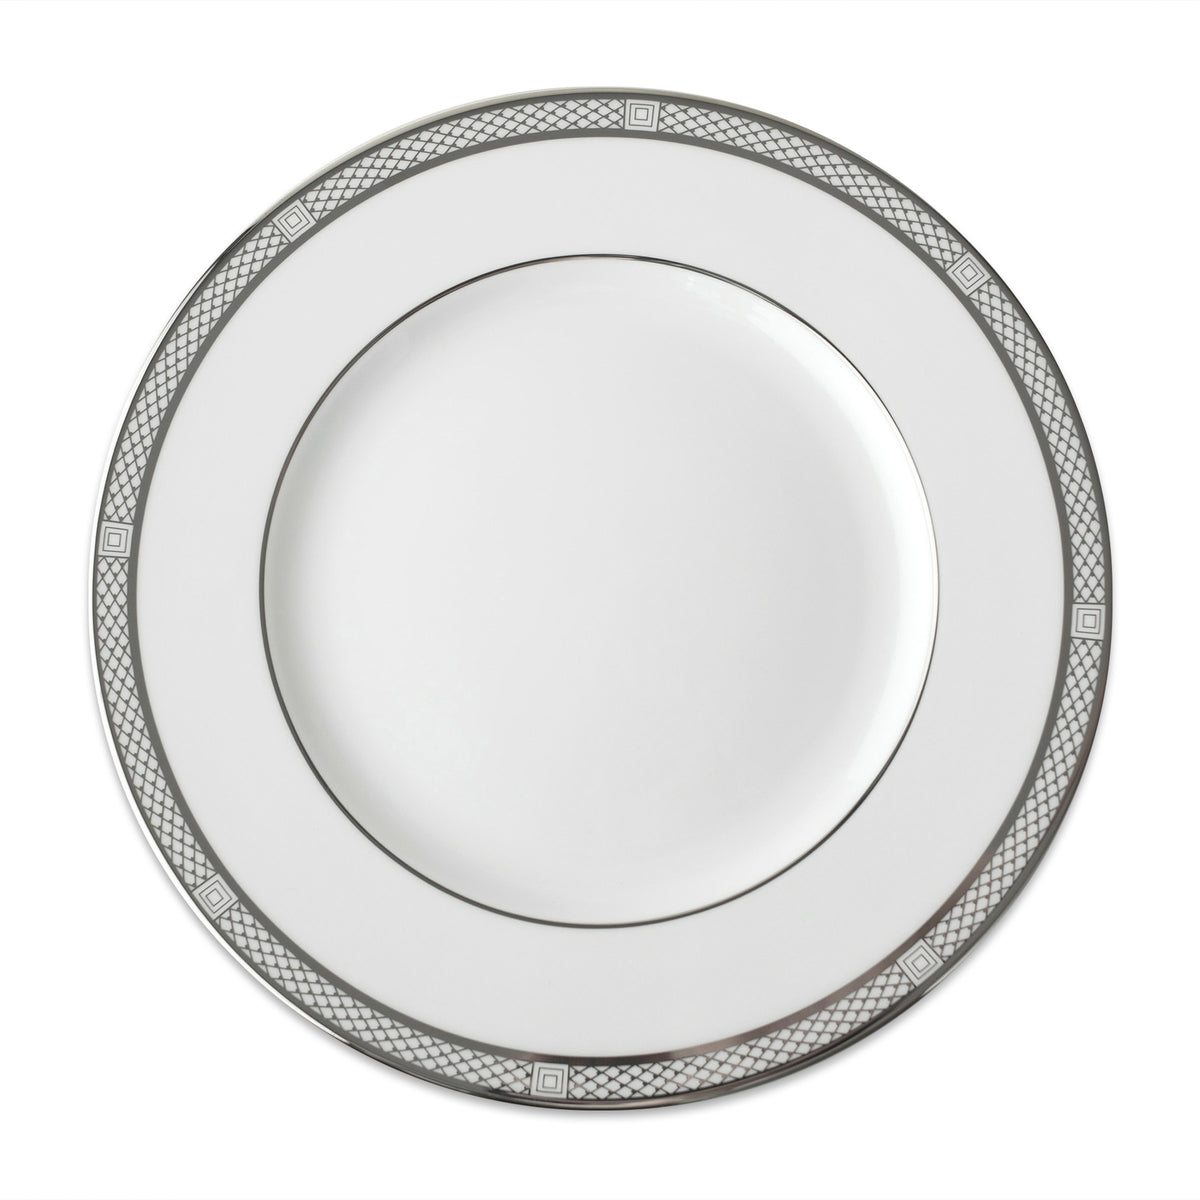 "HAWTHORNE ICE 10.75"" Bone China Simple Dinner - PL - Caskata"